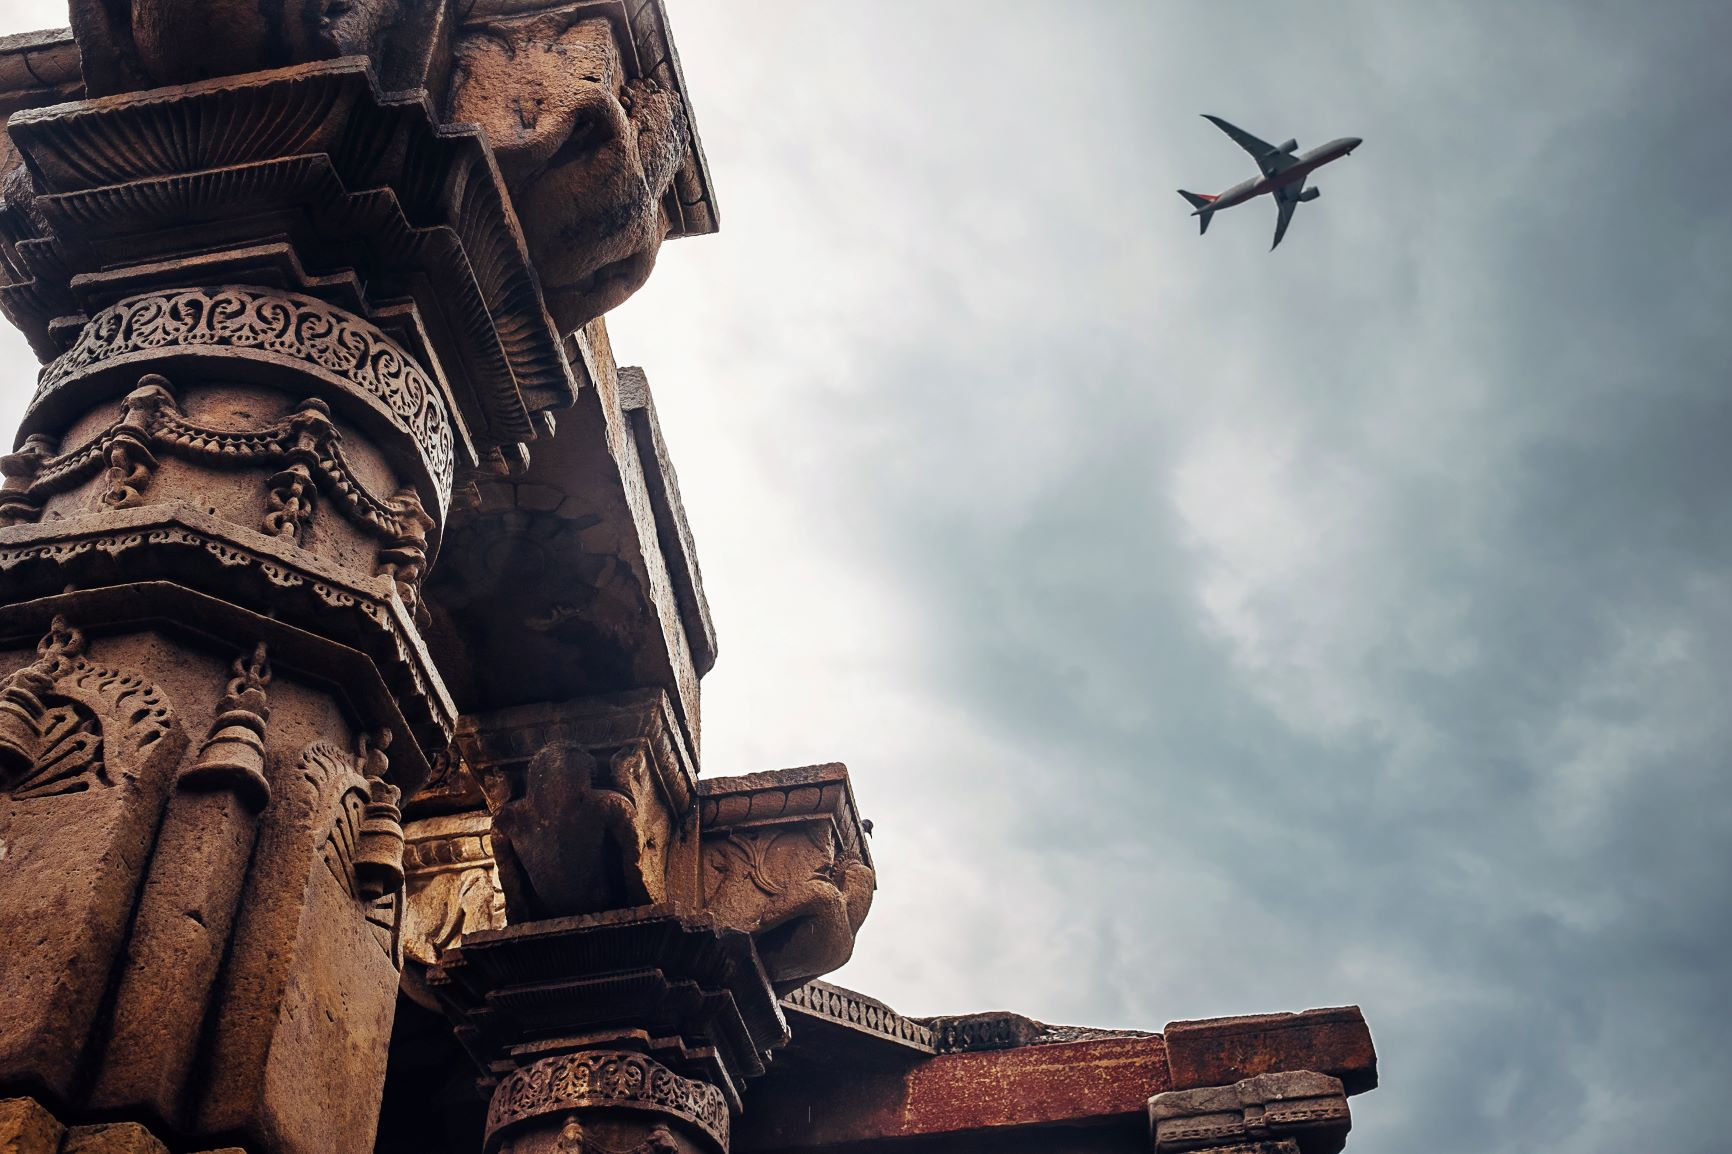 Image of Qutb Minar with airplane